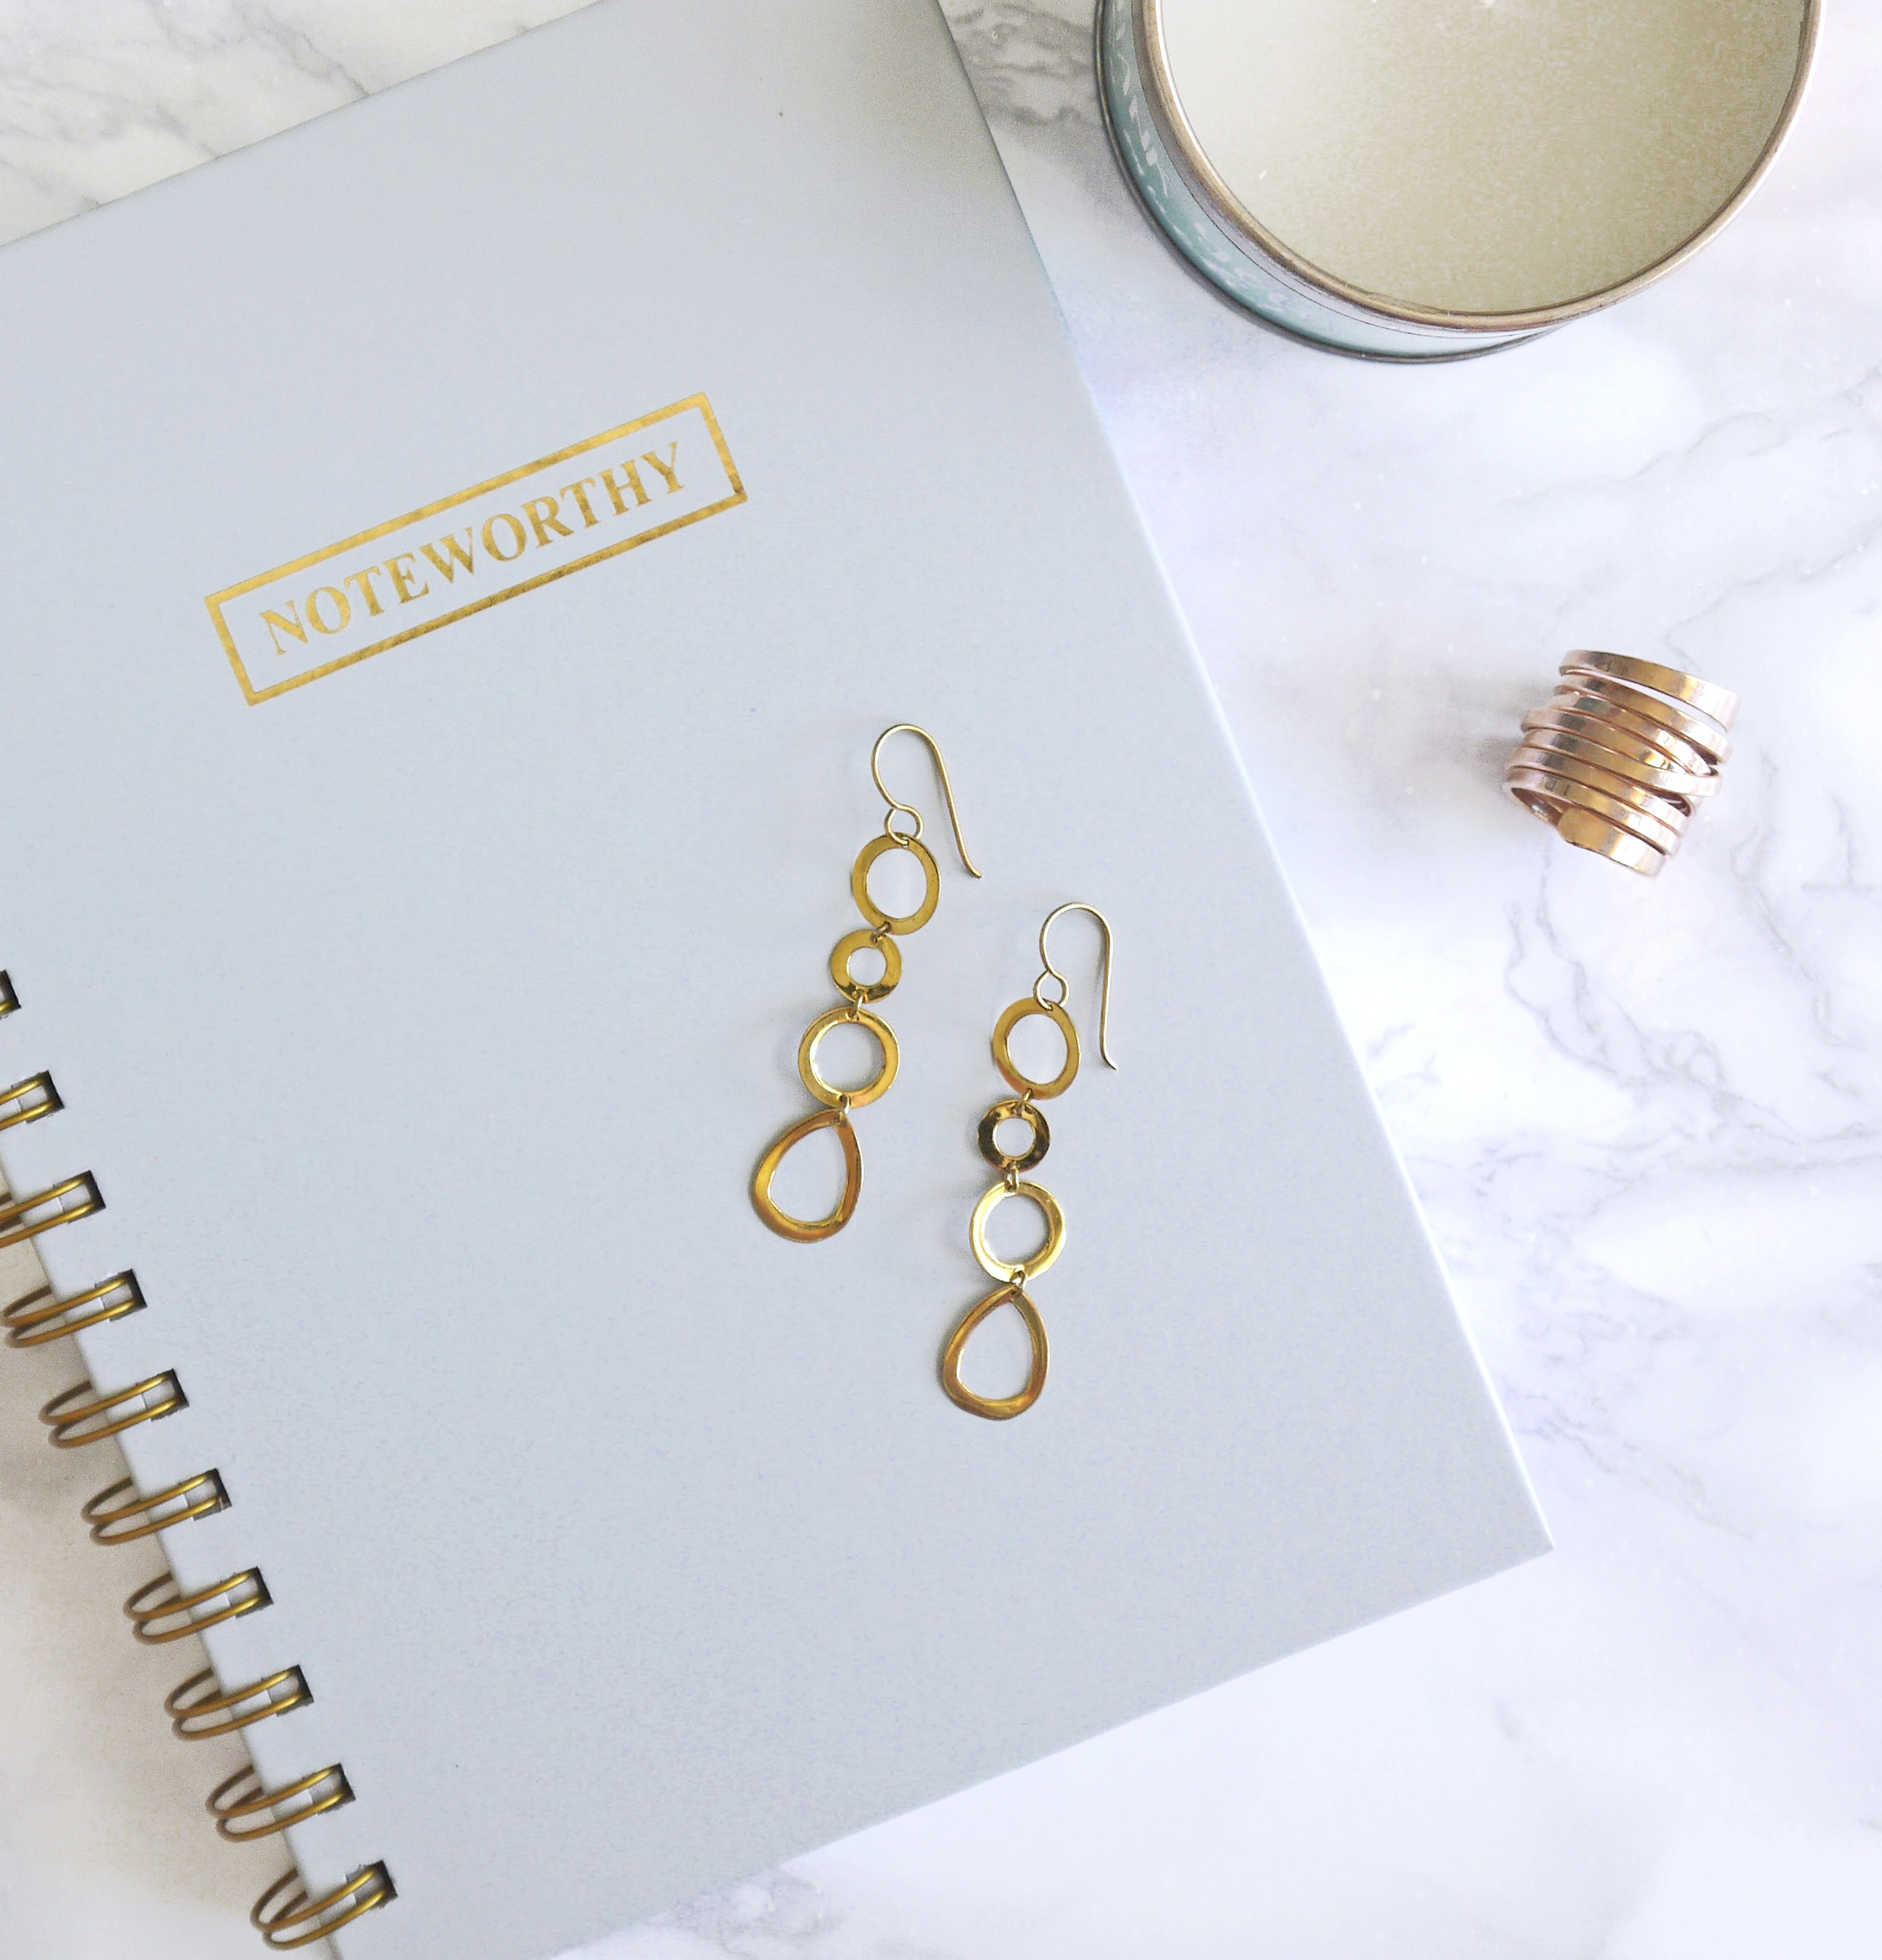 pair of gold-colored dangling hook earrings on top of spiral notebook